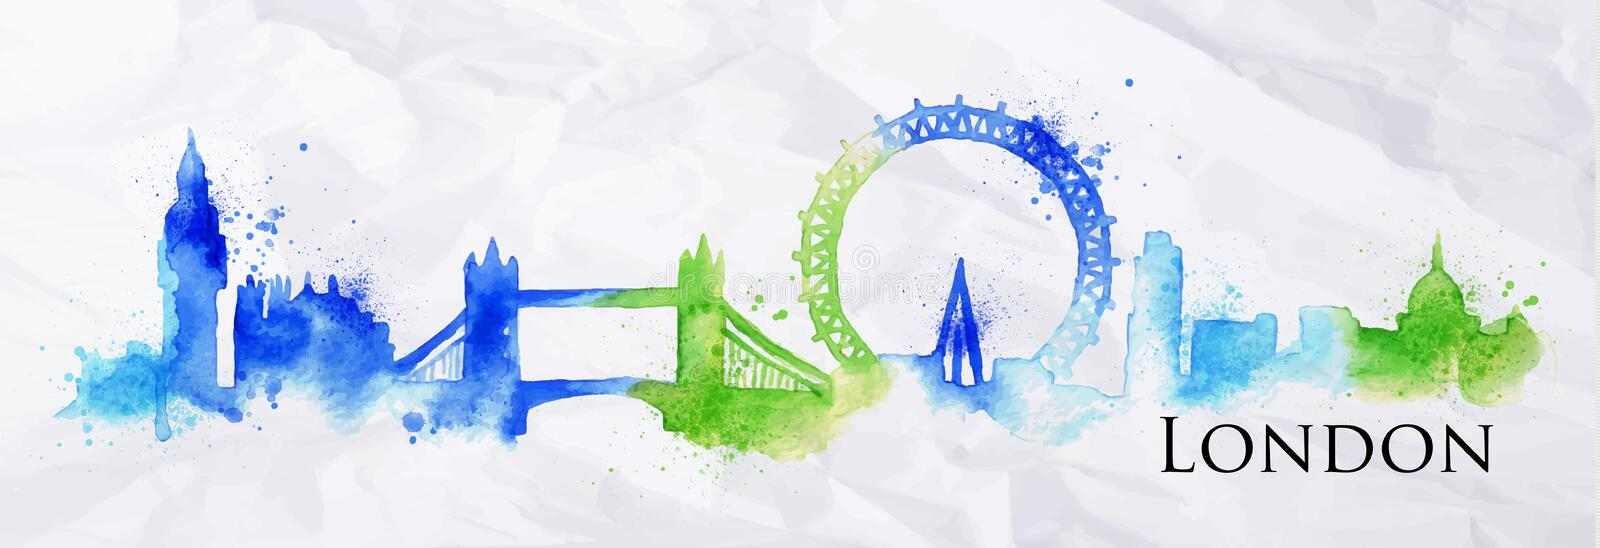 Aquarelle Londres de silhouette illustration libre de droits